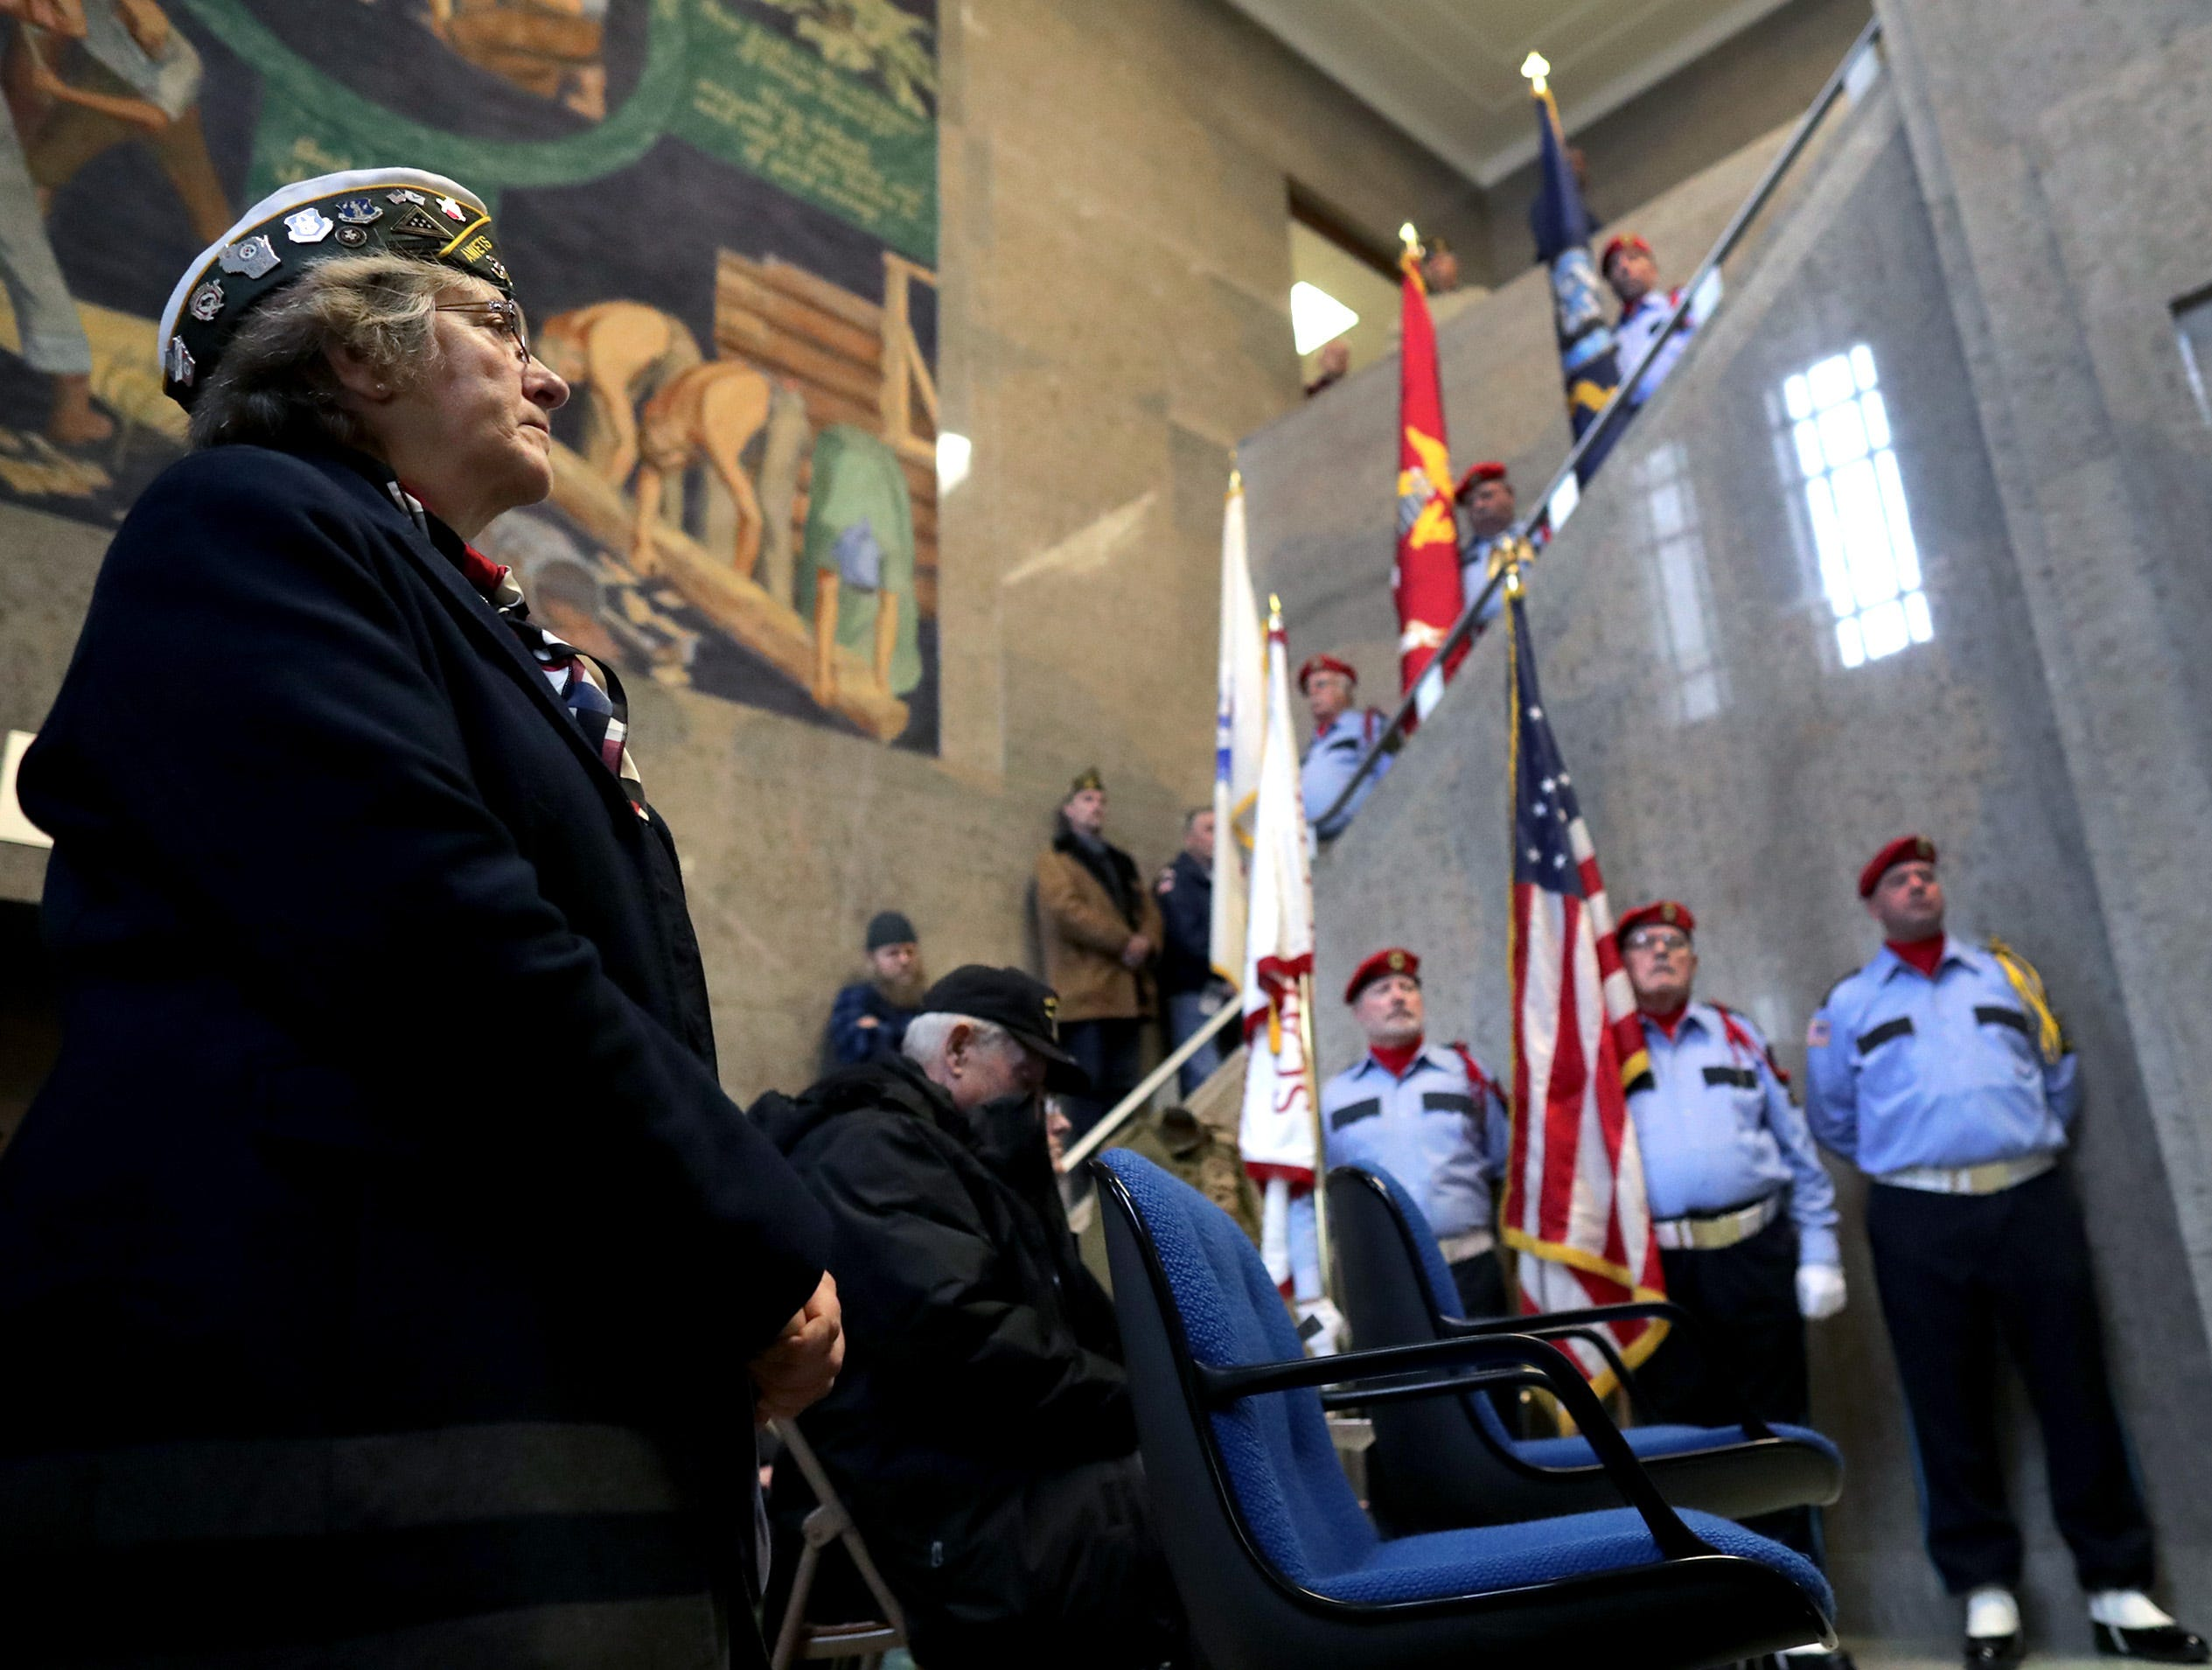 Kim Kraddock, Airforce, listens during the Outagamie County Veterans Day Service on Sunday, November 11, 2018, in Appleton, Wis. The service, in part, commemorated the 100th annivesary of the end of WW I.